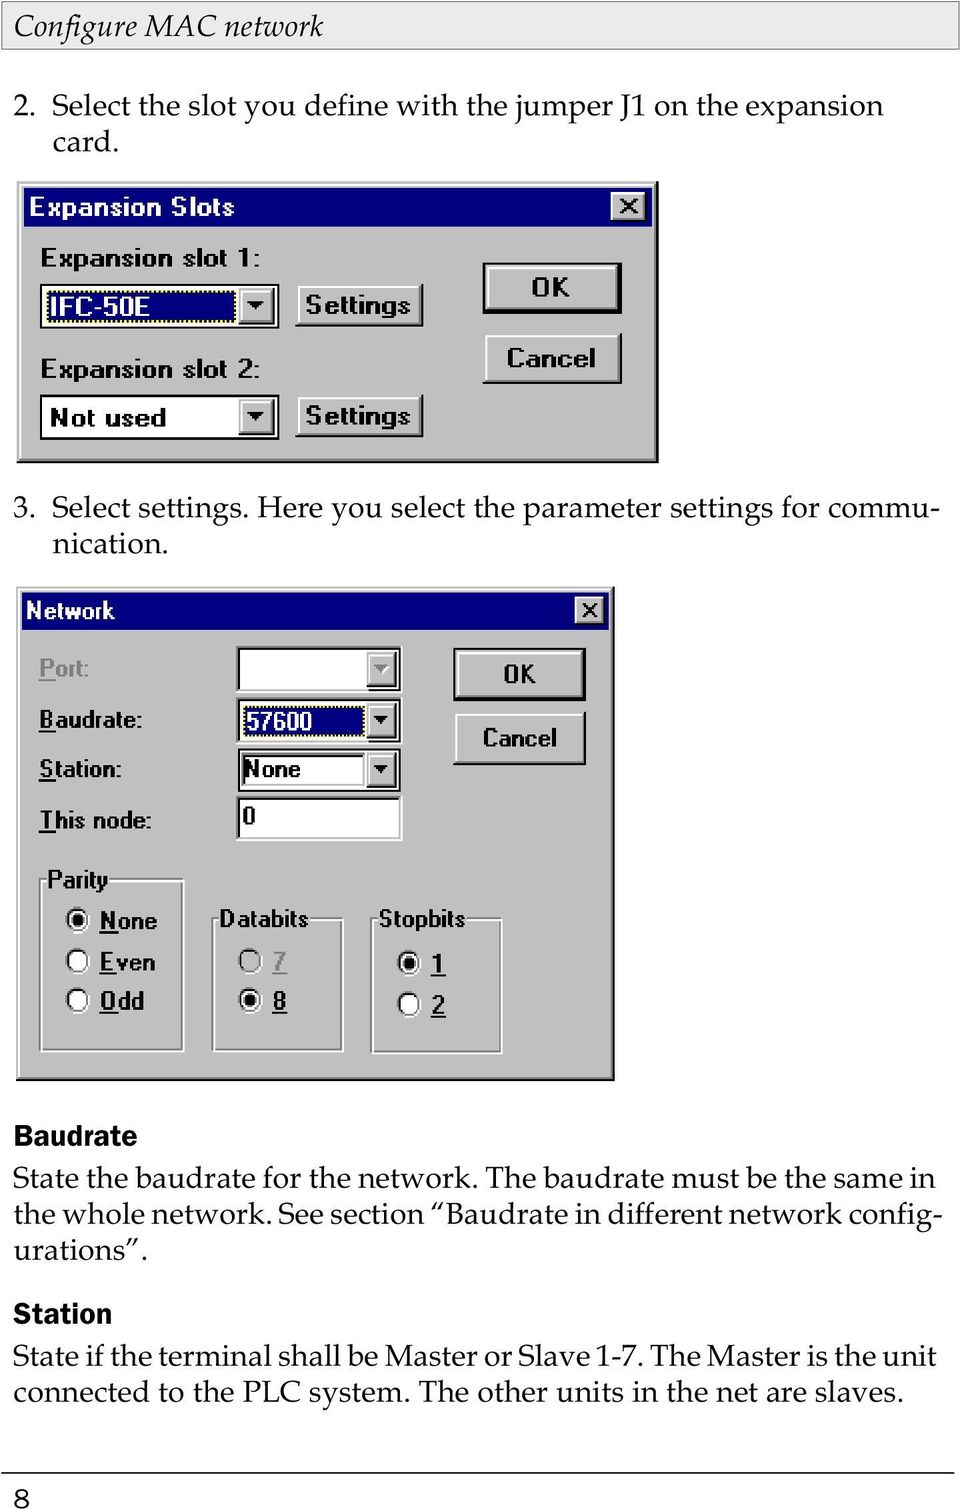 The baudrate must be the same in the whole network. See section Baudrate in different network configurations.